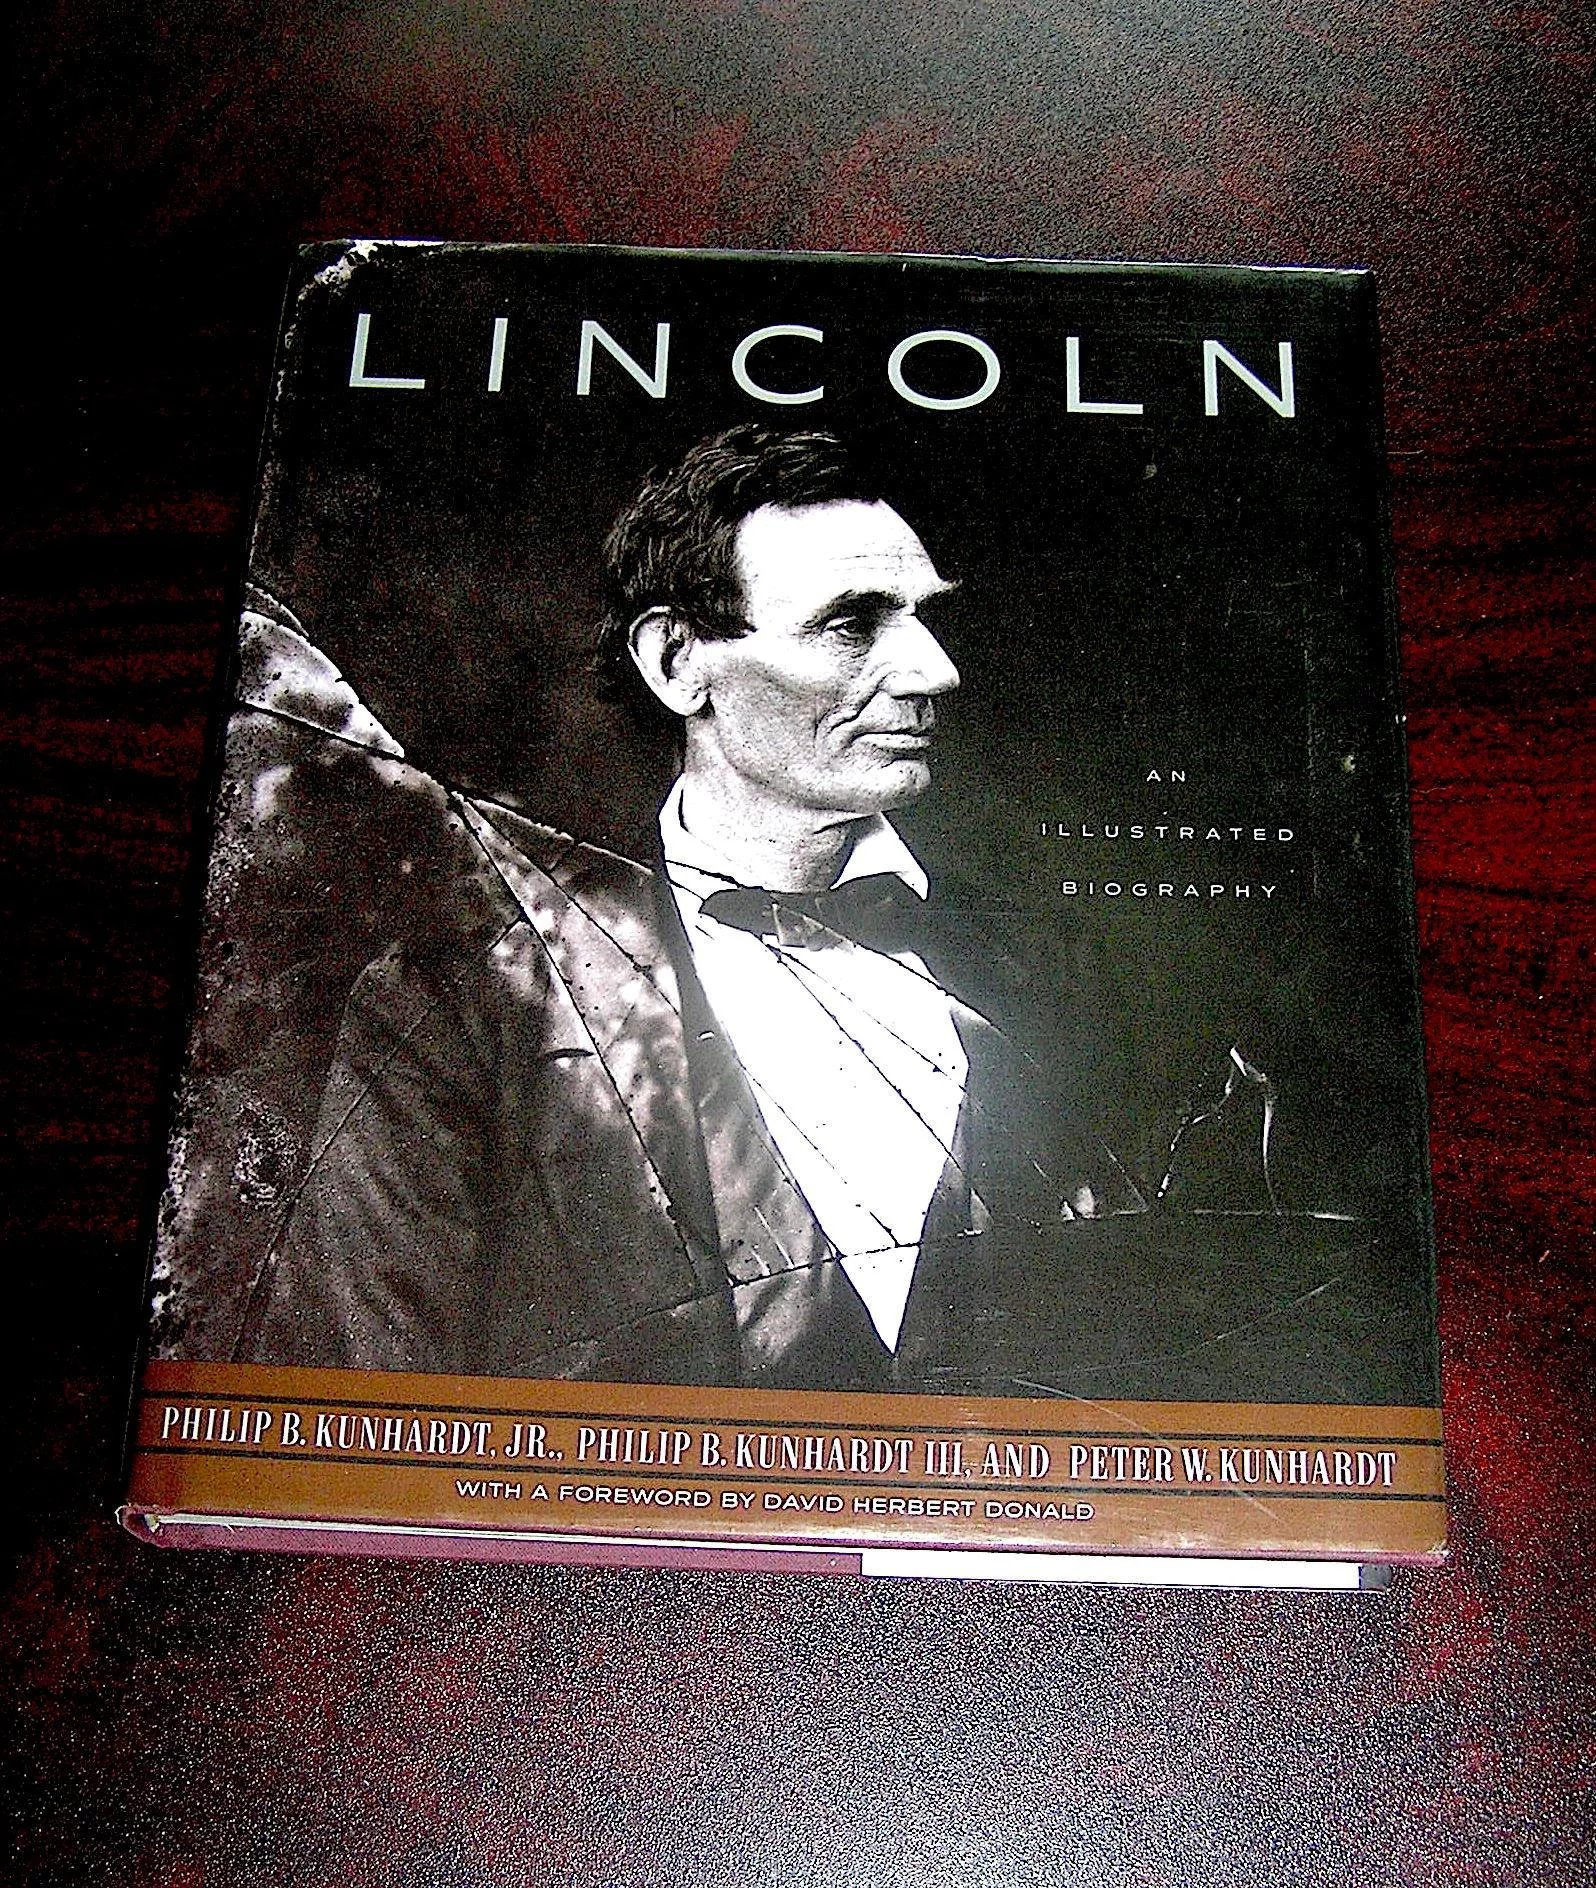 wanted book vampire as well the movie vs see trailer lincoln picking snarks layed eyes and ended alones abraham knew instead to up cine soon versus in on film stand missing series i it